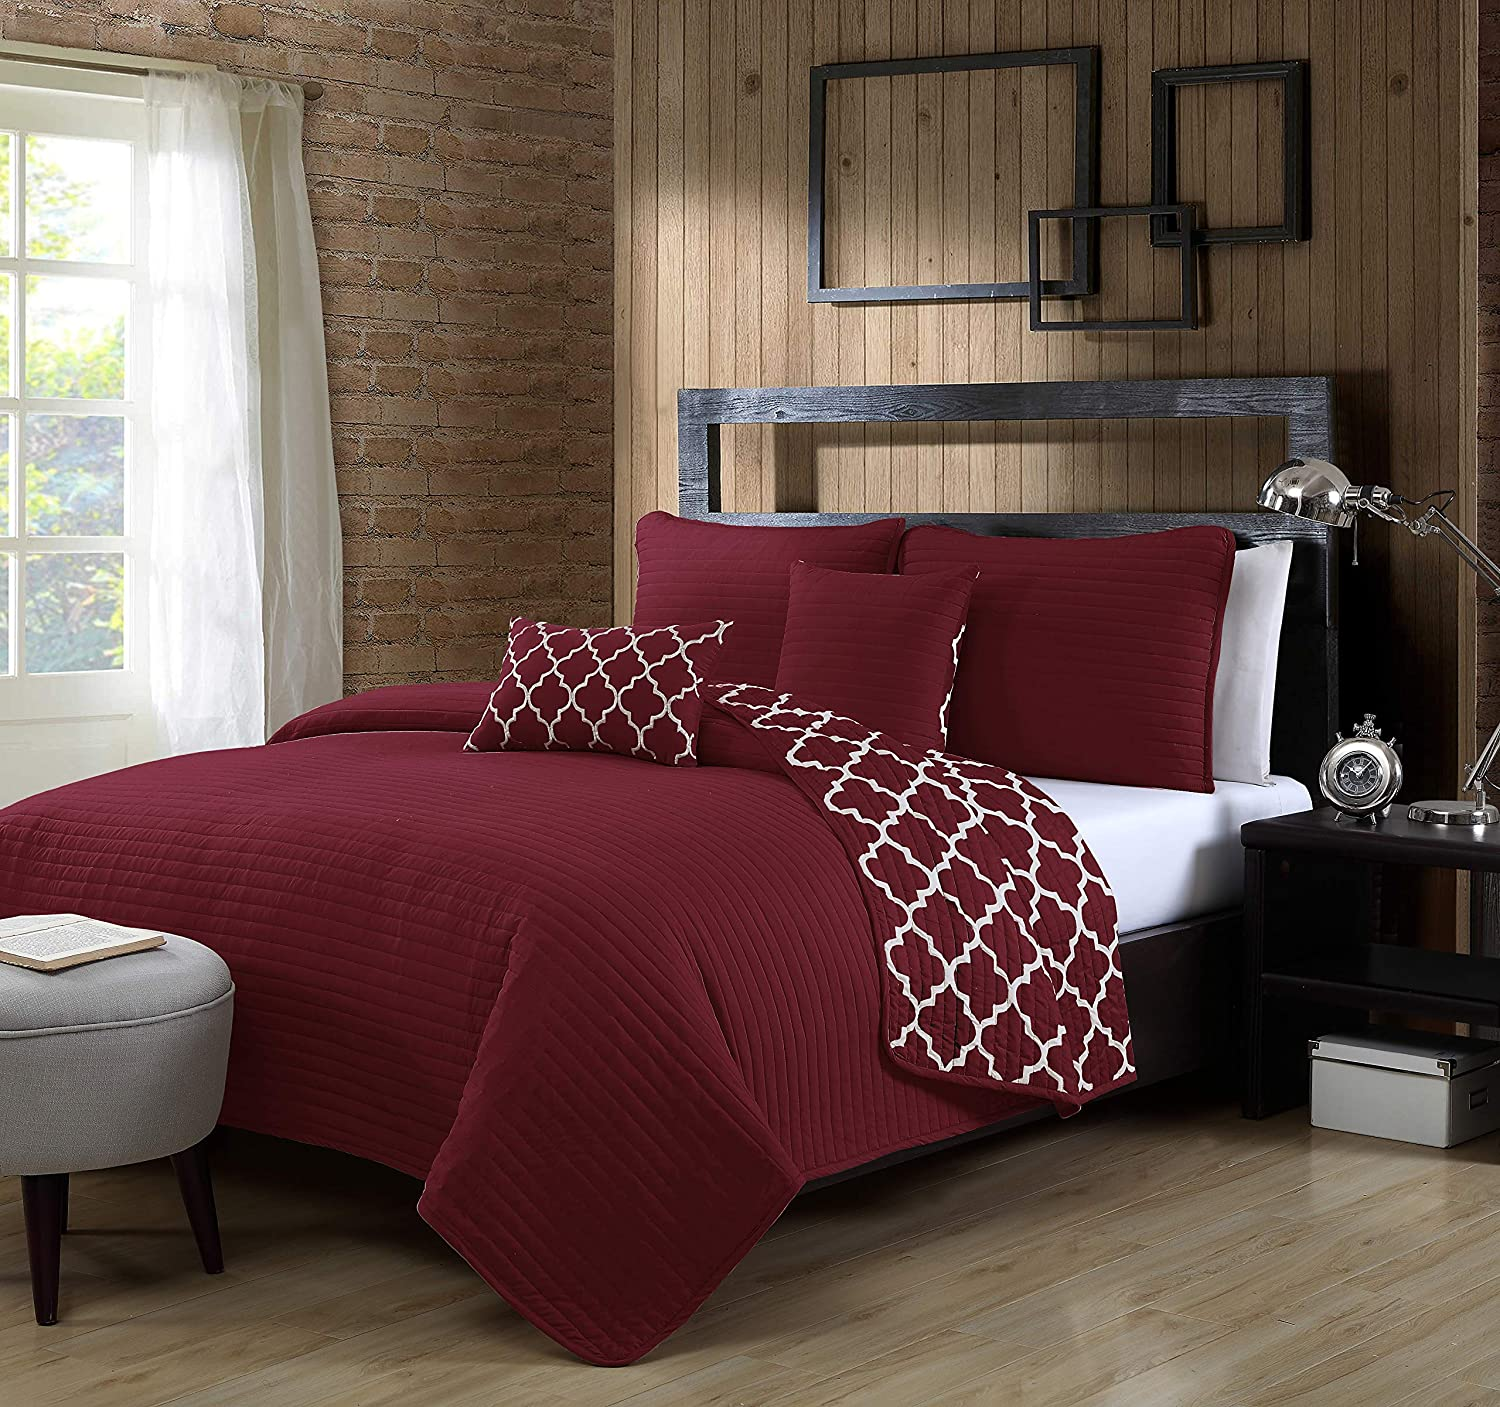 Geneva Home Fashion Griffin Quilt Set, Twin, Burgundy